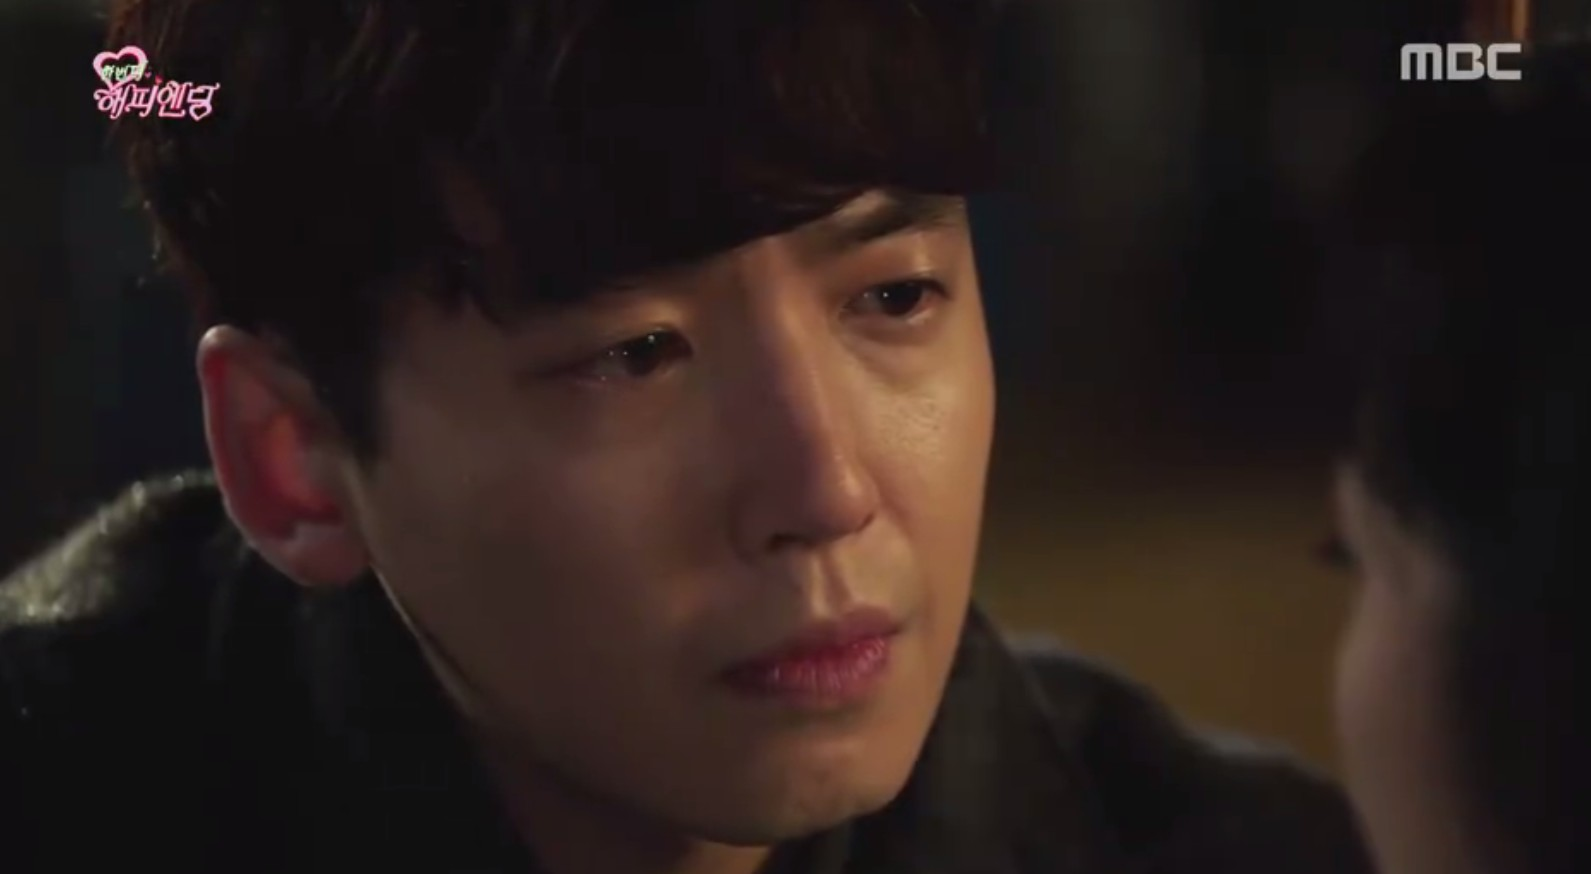 [WEEK AFTER WEEK] One more happy ending • ep15/16 (fin) ~ Corée du sud